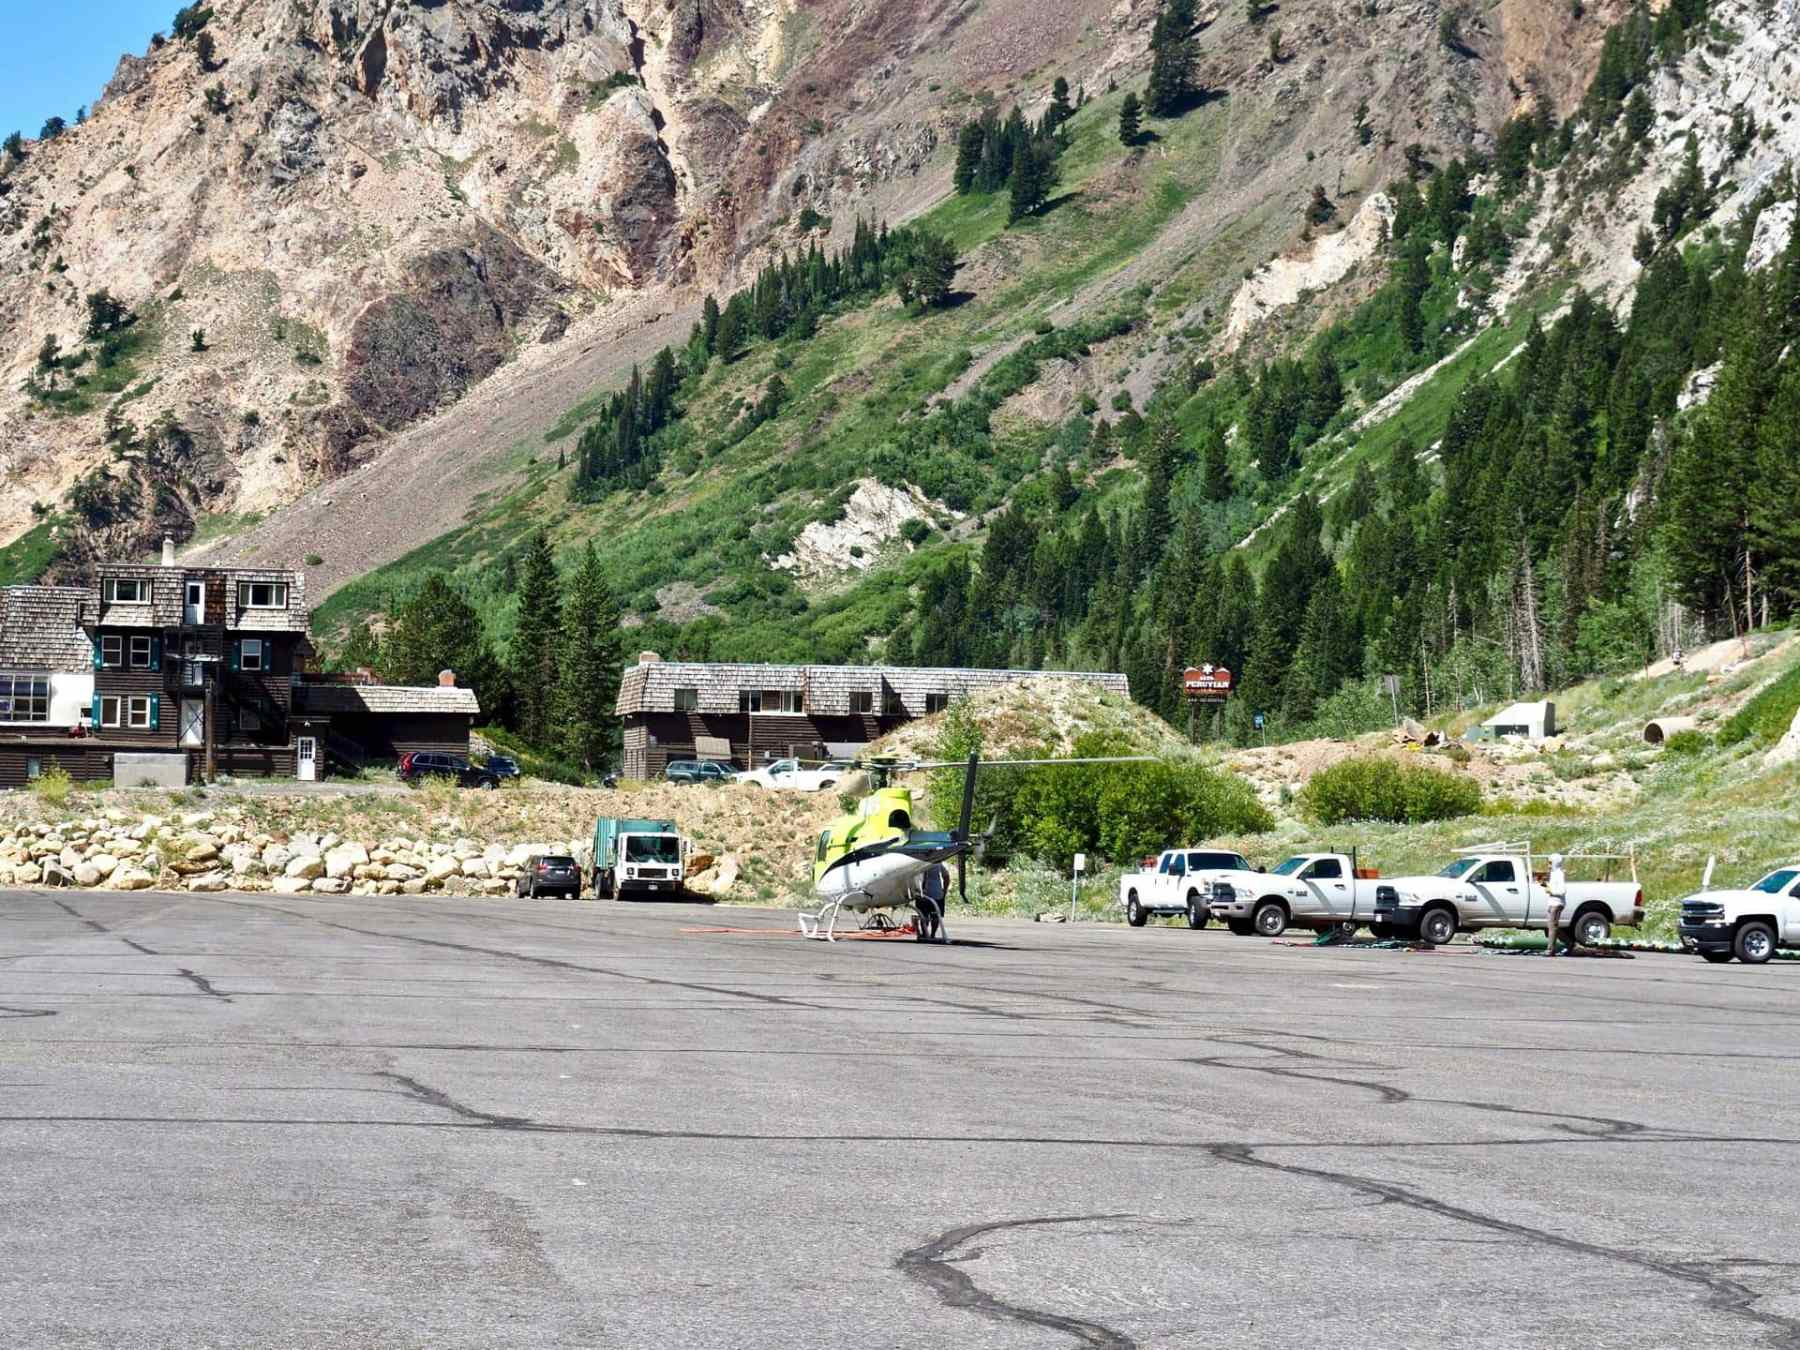 helicopter preparing the mountain for winter - Alta parking lot